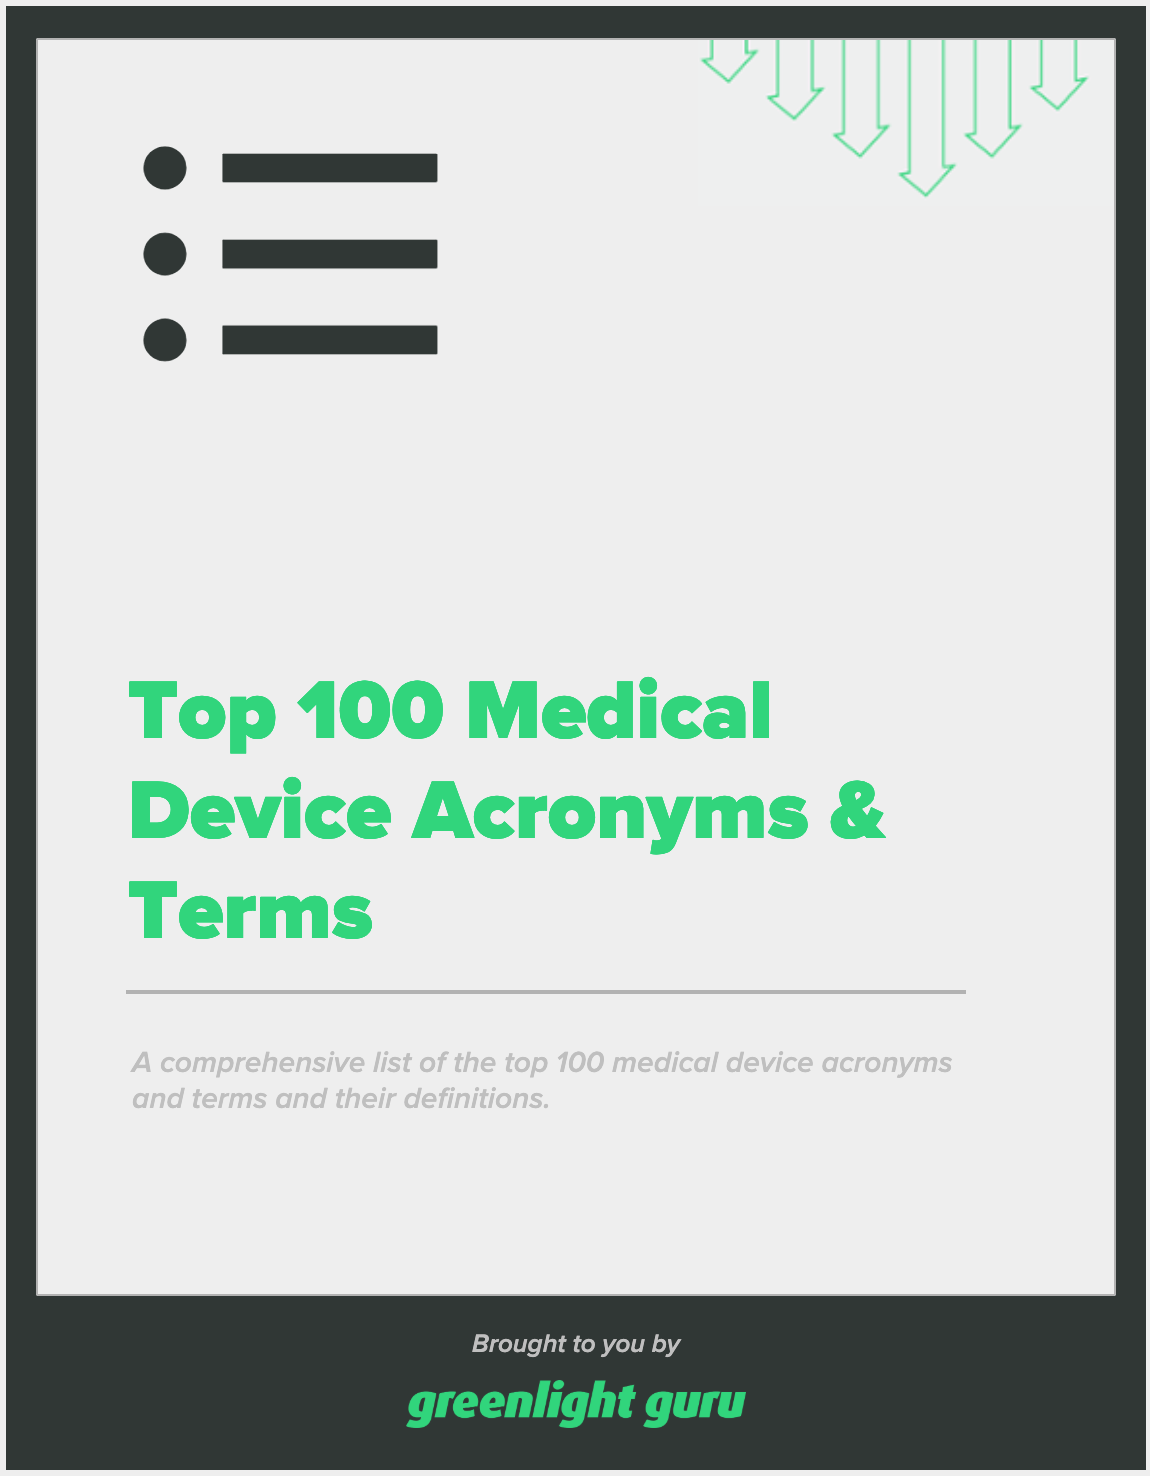 top 100 med device acronyms slide-in cover